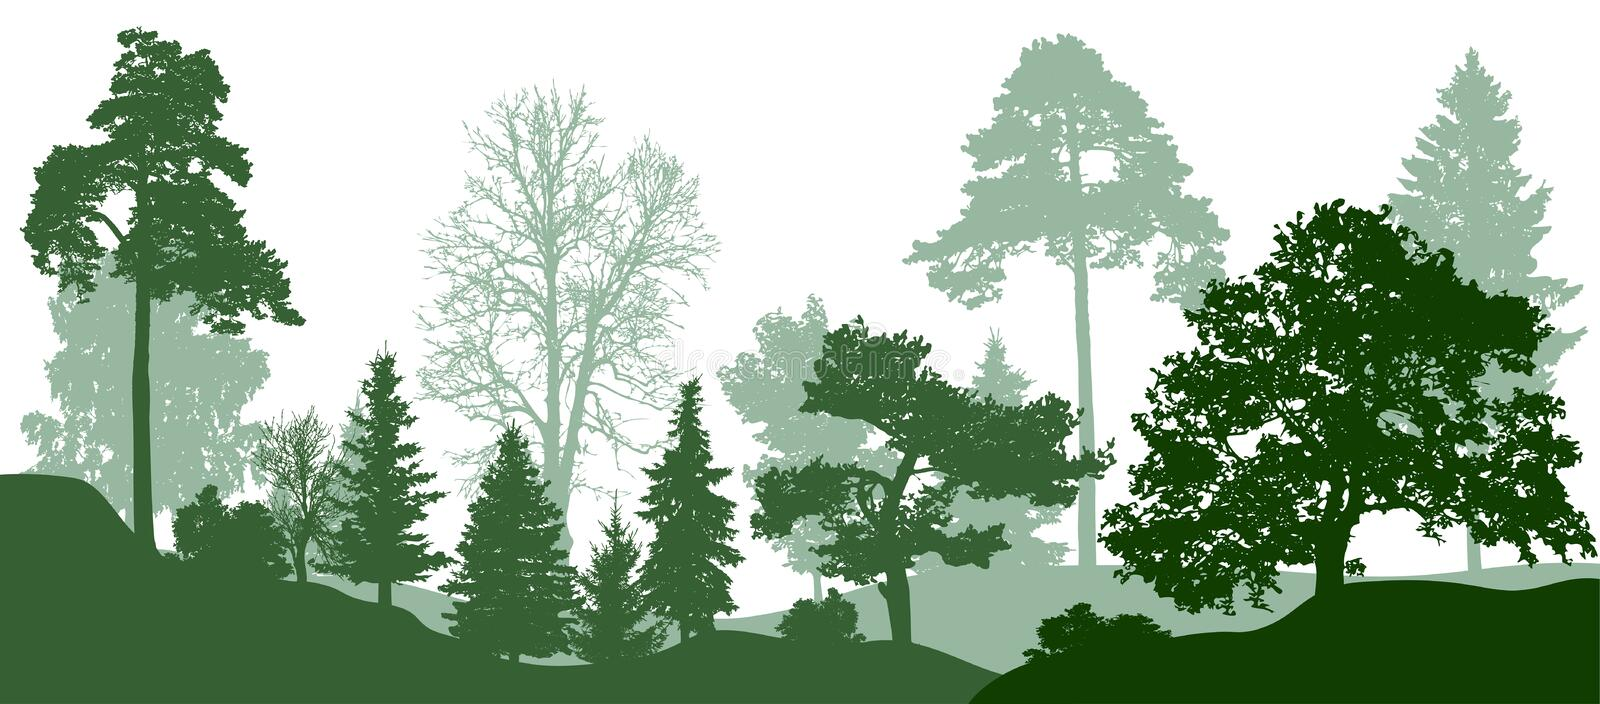 Forest green trees silhouette. Nature, park. Vector background.  vector illustration